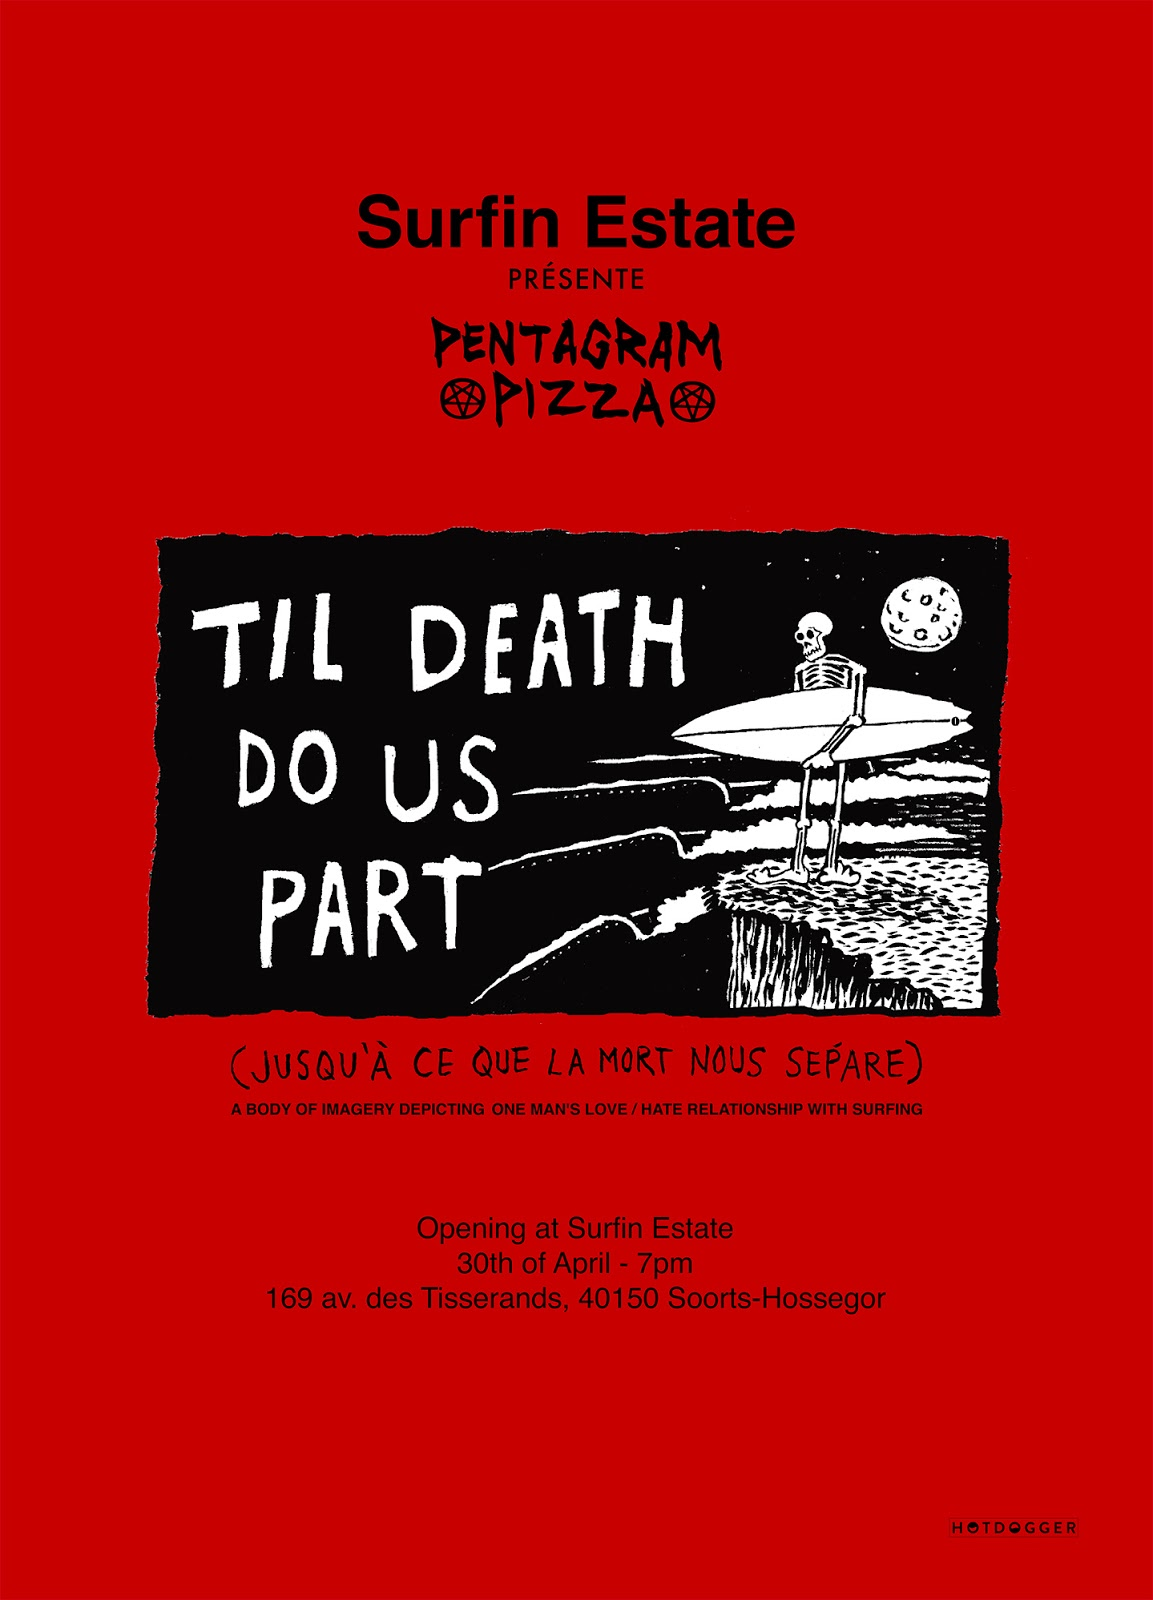 Pentagram Pizza : Til death do us part, at Surfin Estate